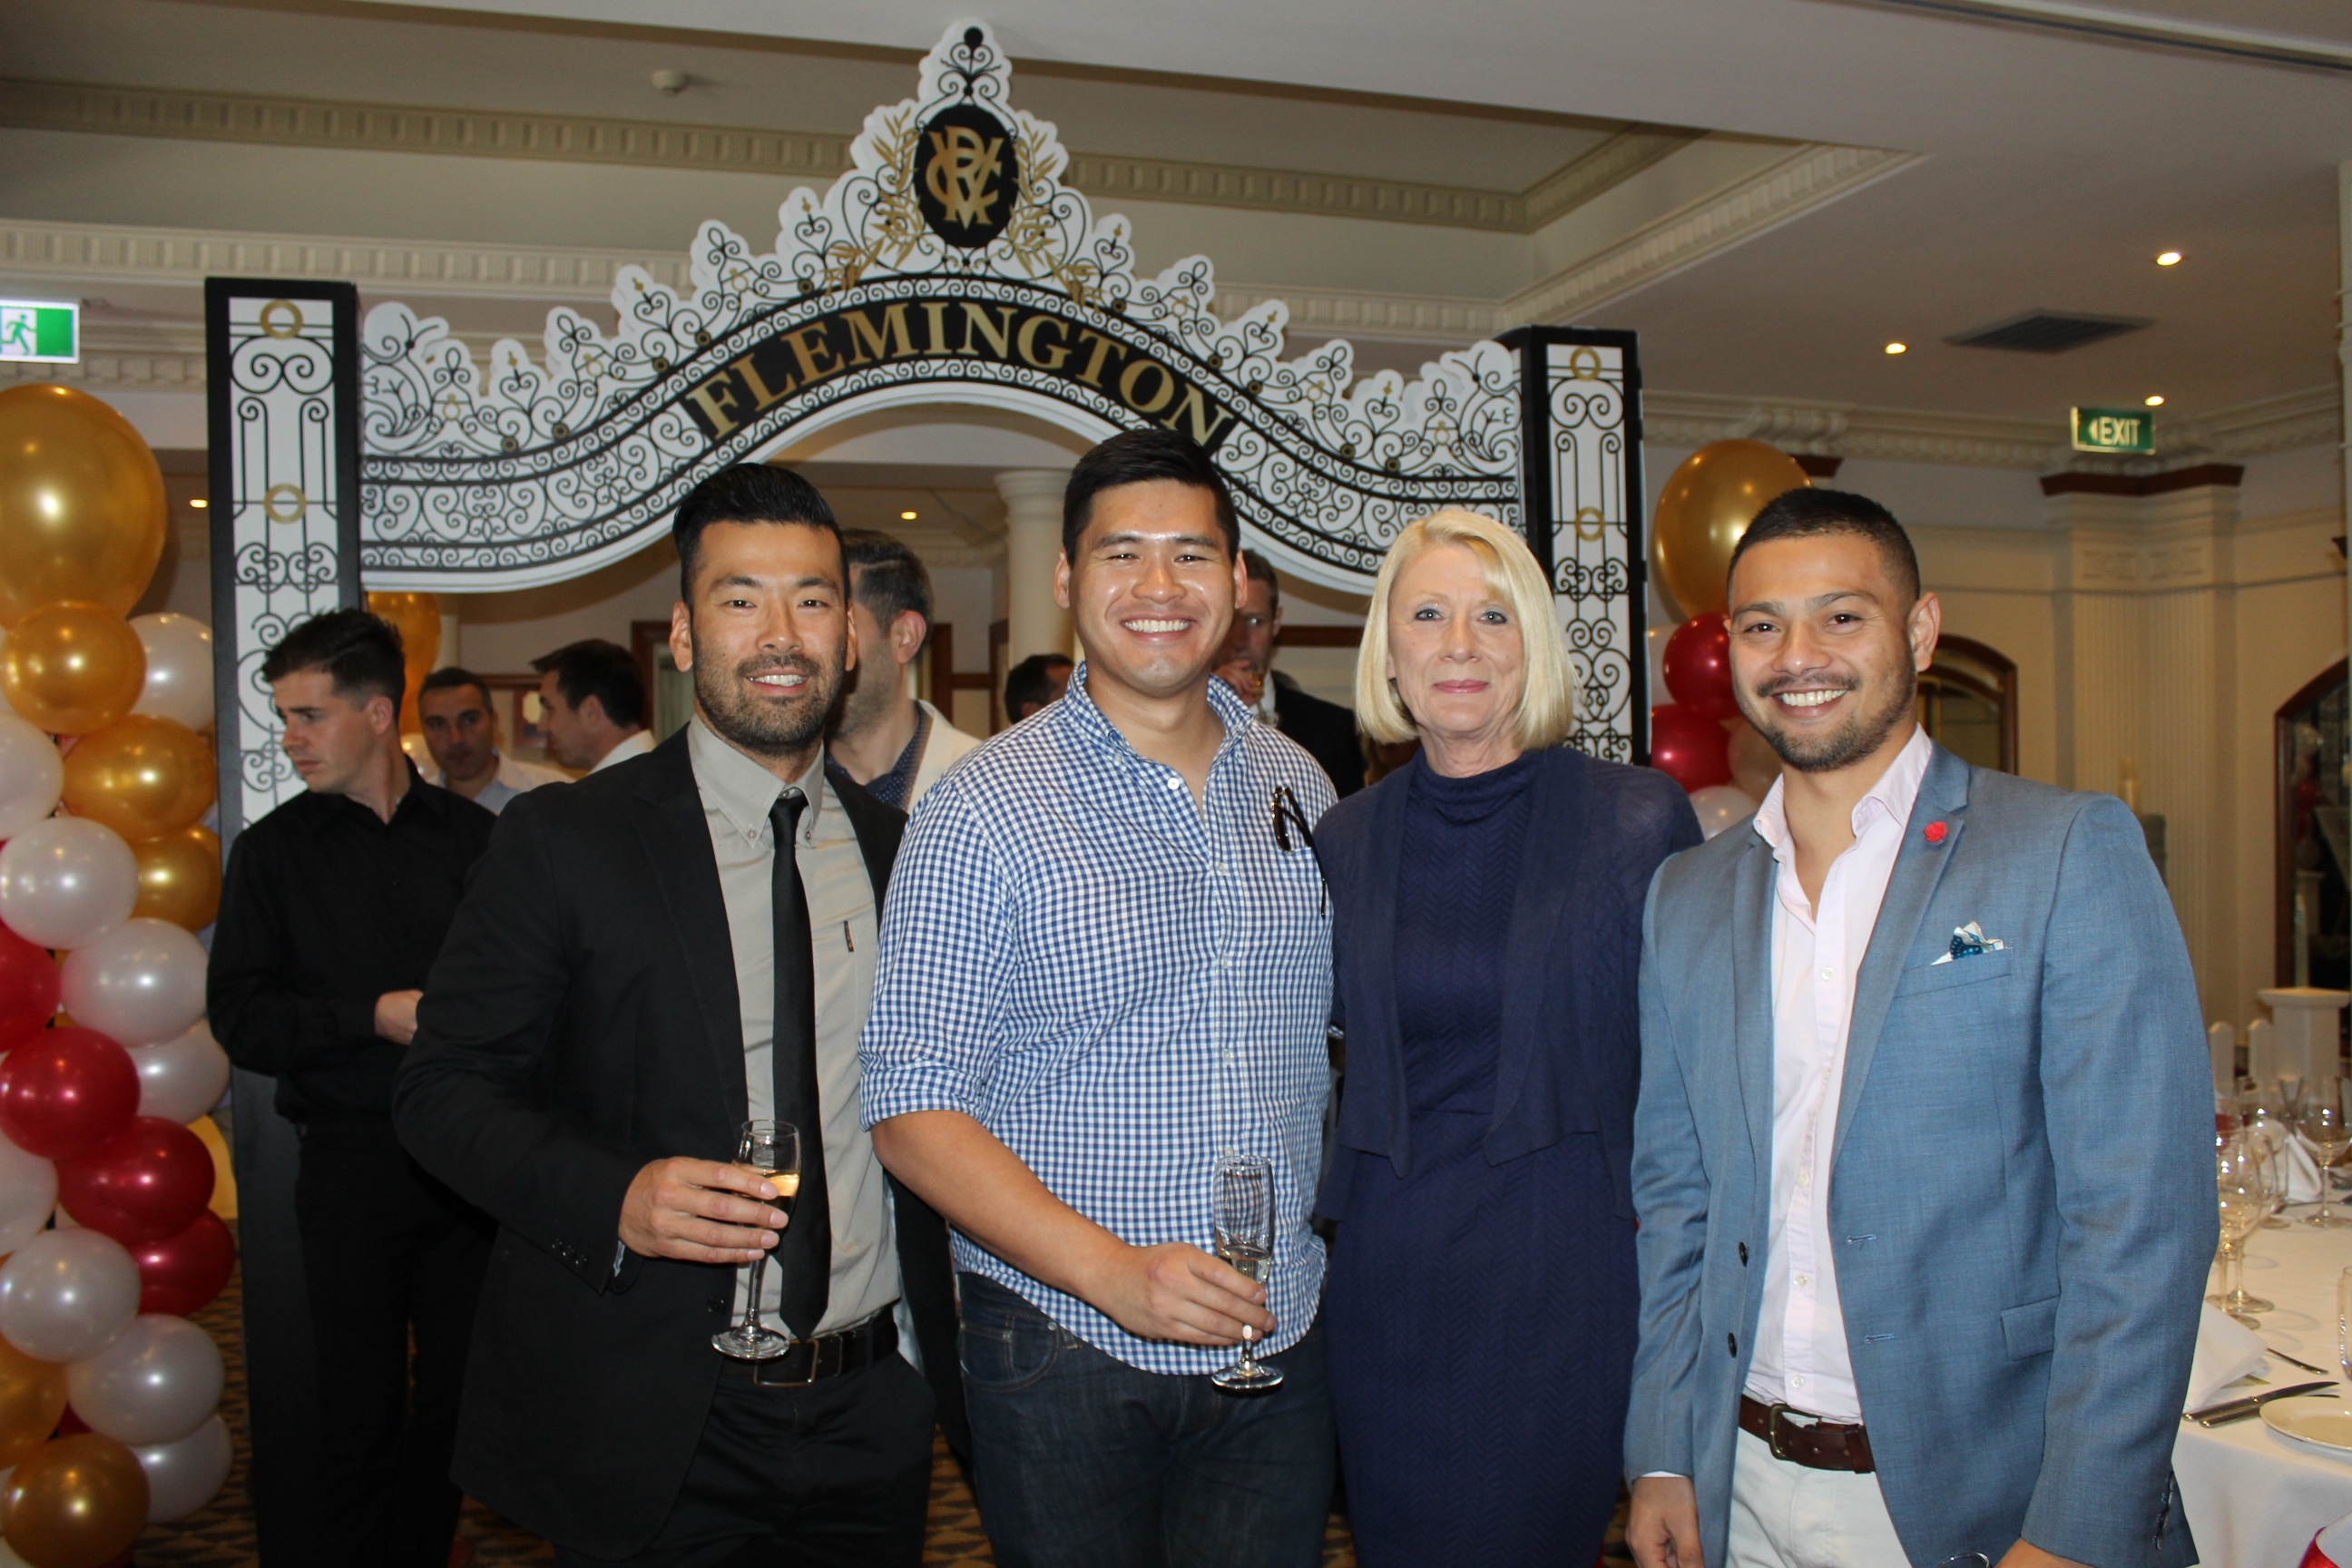 Ryu Ogino, Ben Ly, Herbee Gutierrez from Batesmart and Wendy Scott from Harvey Norman Commercial